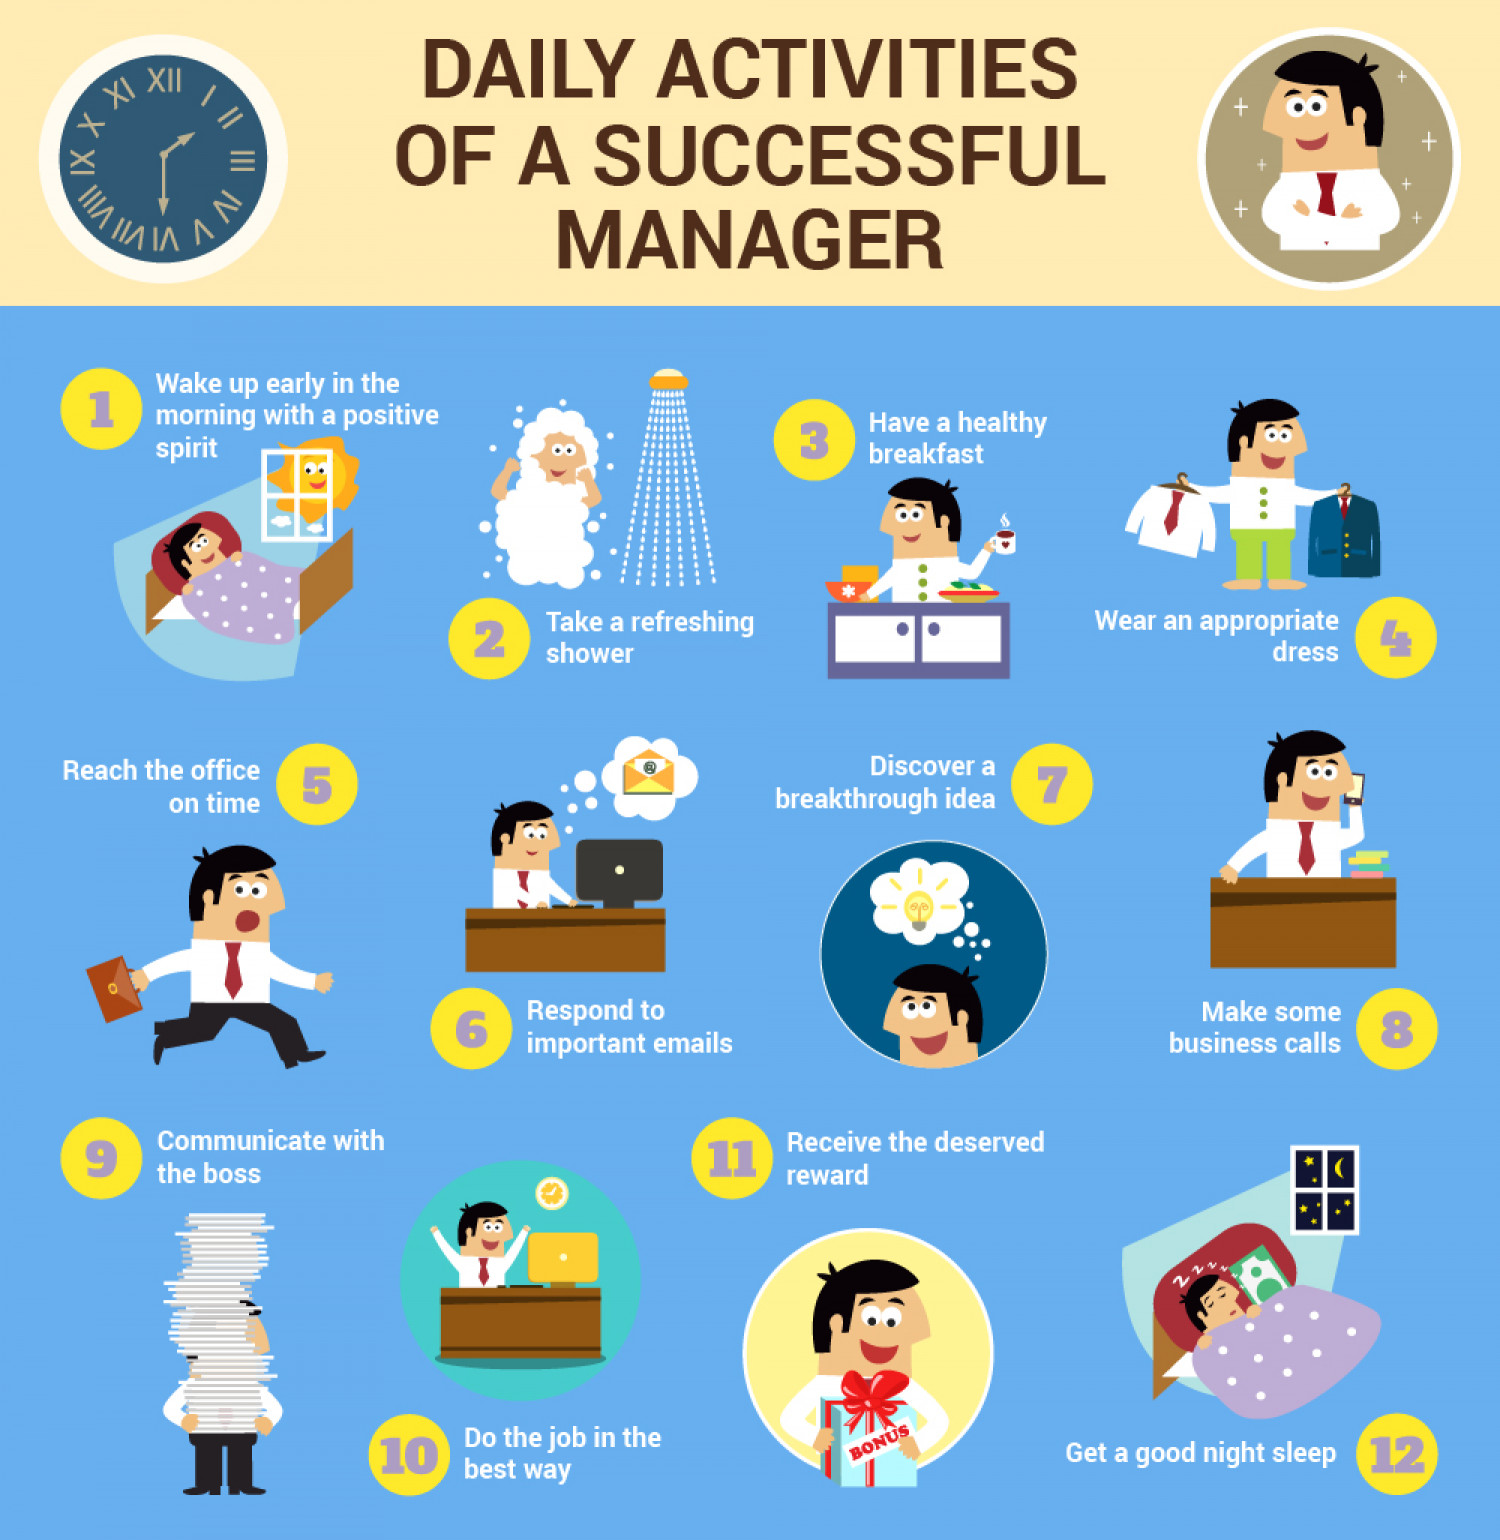 Daily Activities of a Successful Manager Infographic